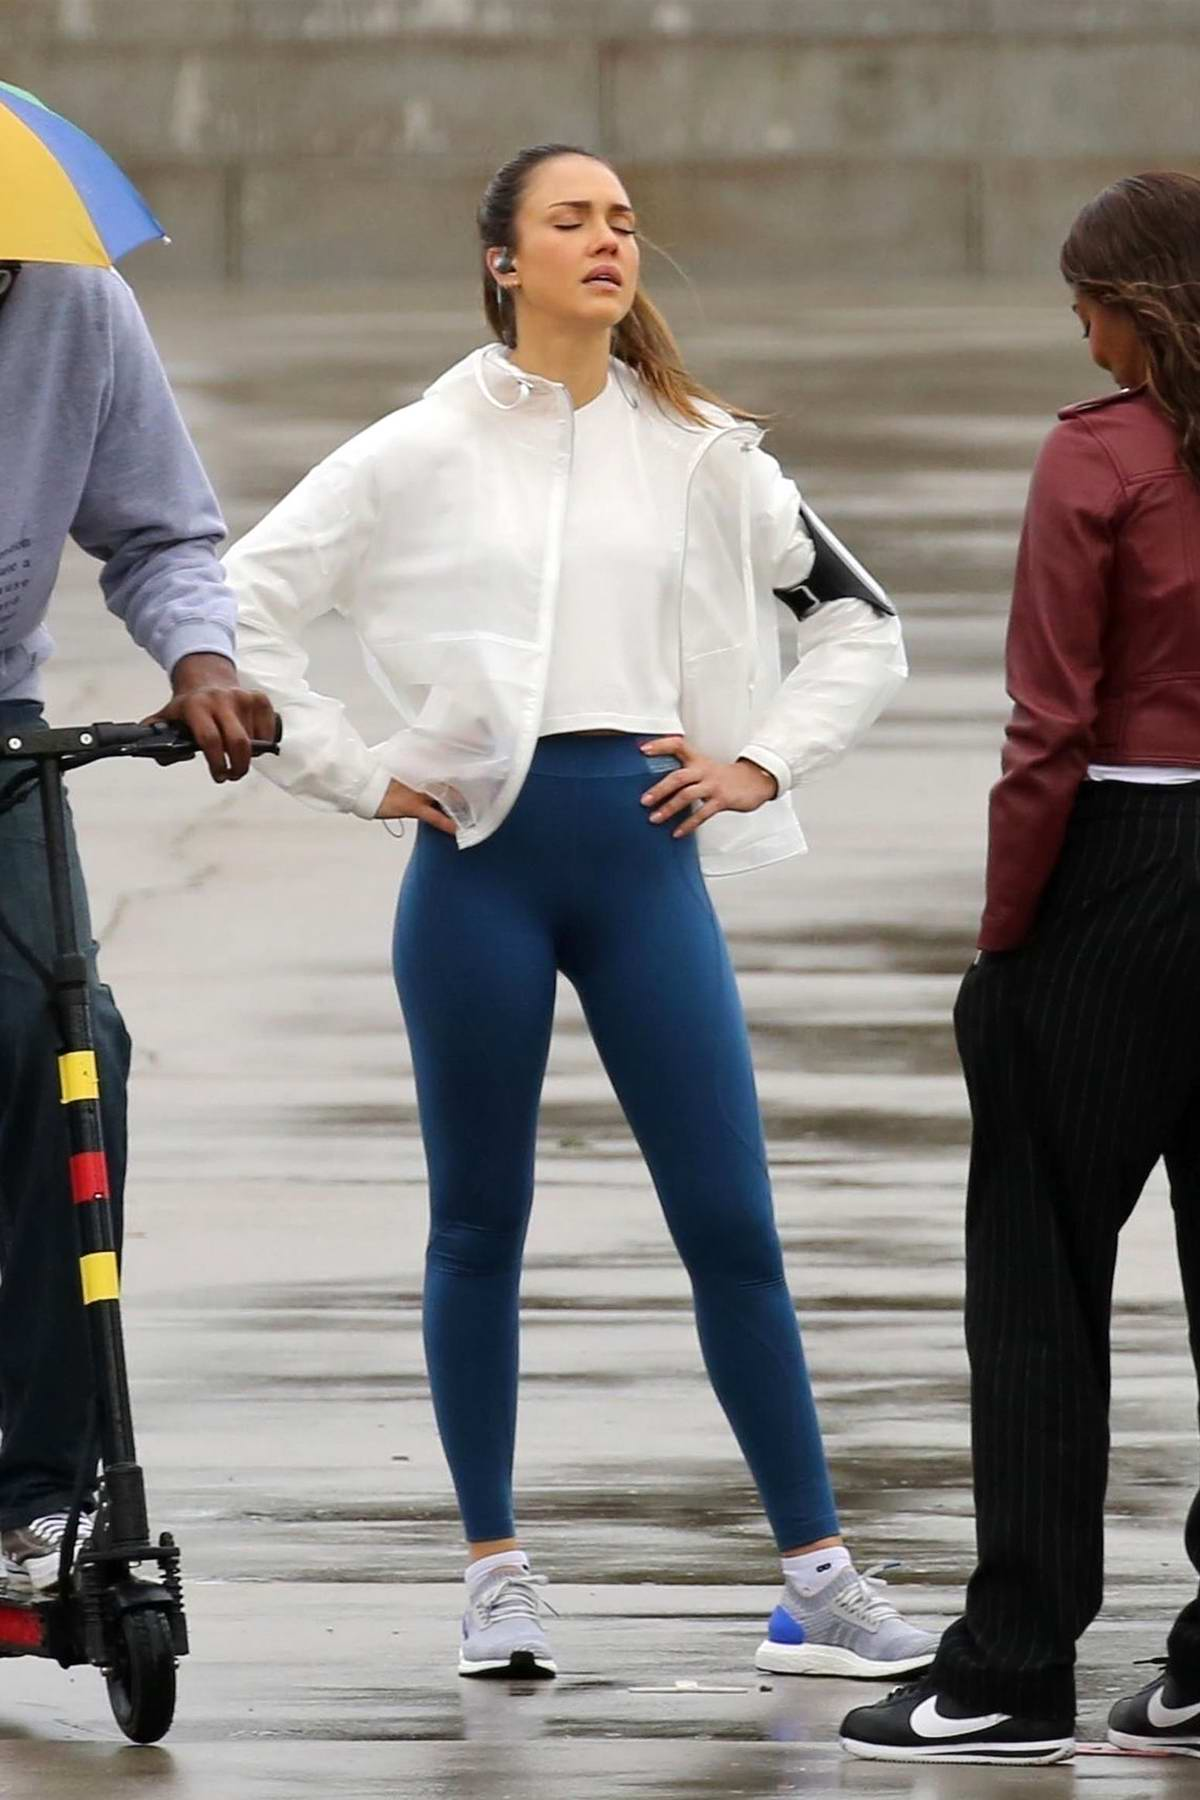 Jessica Alba spotted in a white top, clear rain jacket and blue leggings while filming a scene for 'LA's Finest' in San Pedro, California